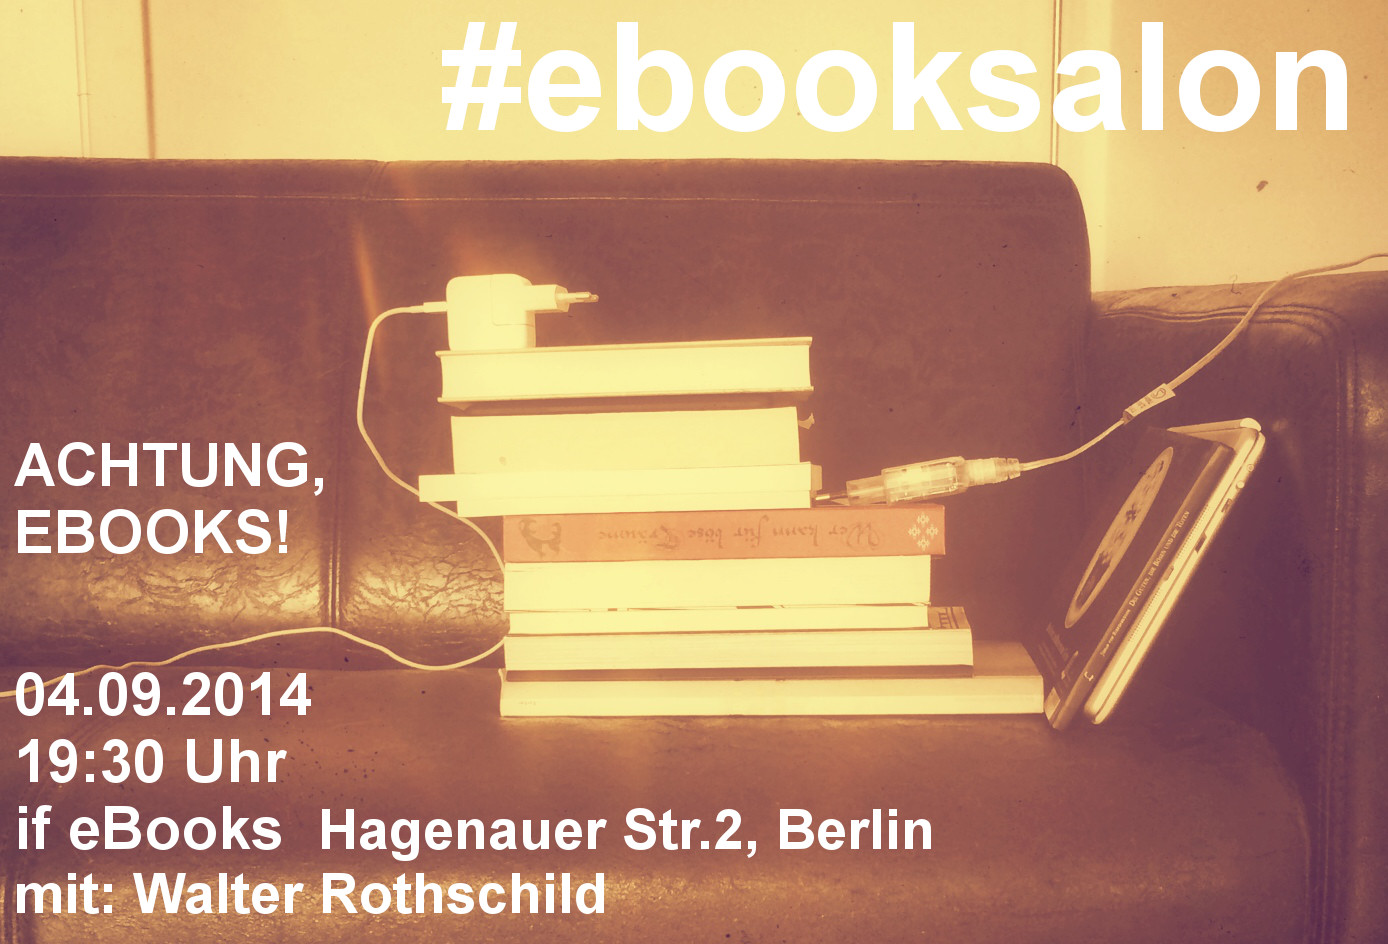 Buchbranche in Berlin #bookupDe #ebooksalon …